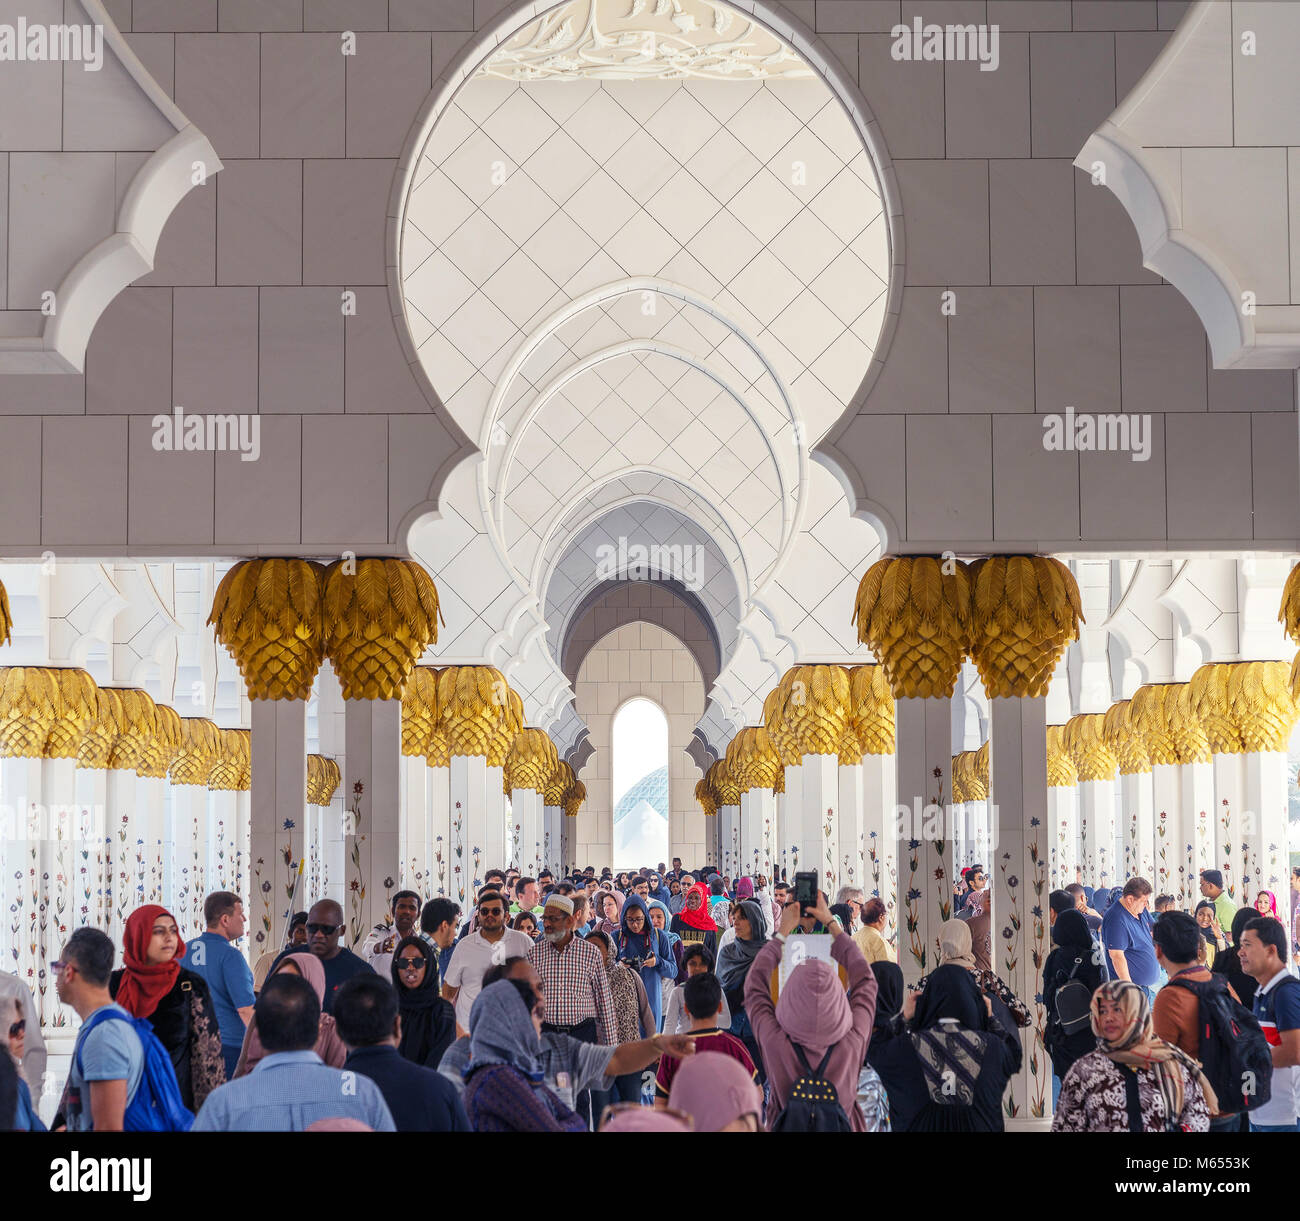 28th December 2017 - Abu Dhabi, UAE. Tourists visiting gorgeous Sheikh Zayed mosque during winter holidays. - Stock Image